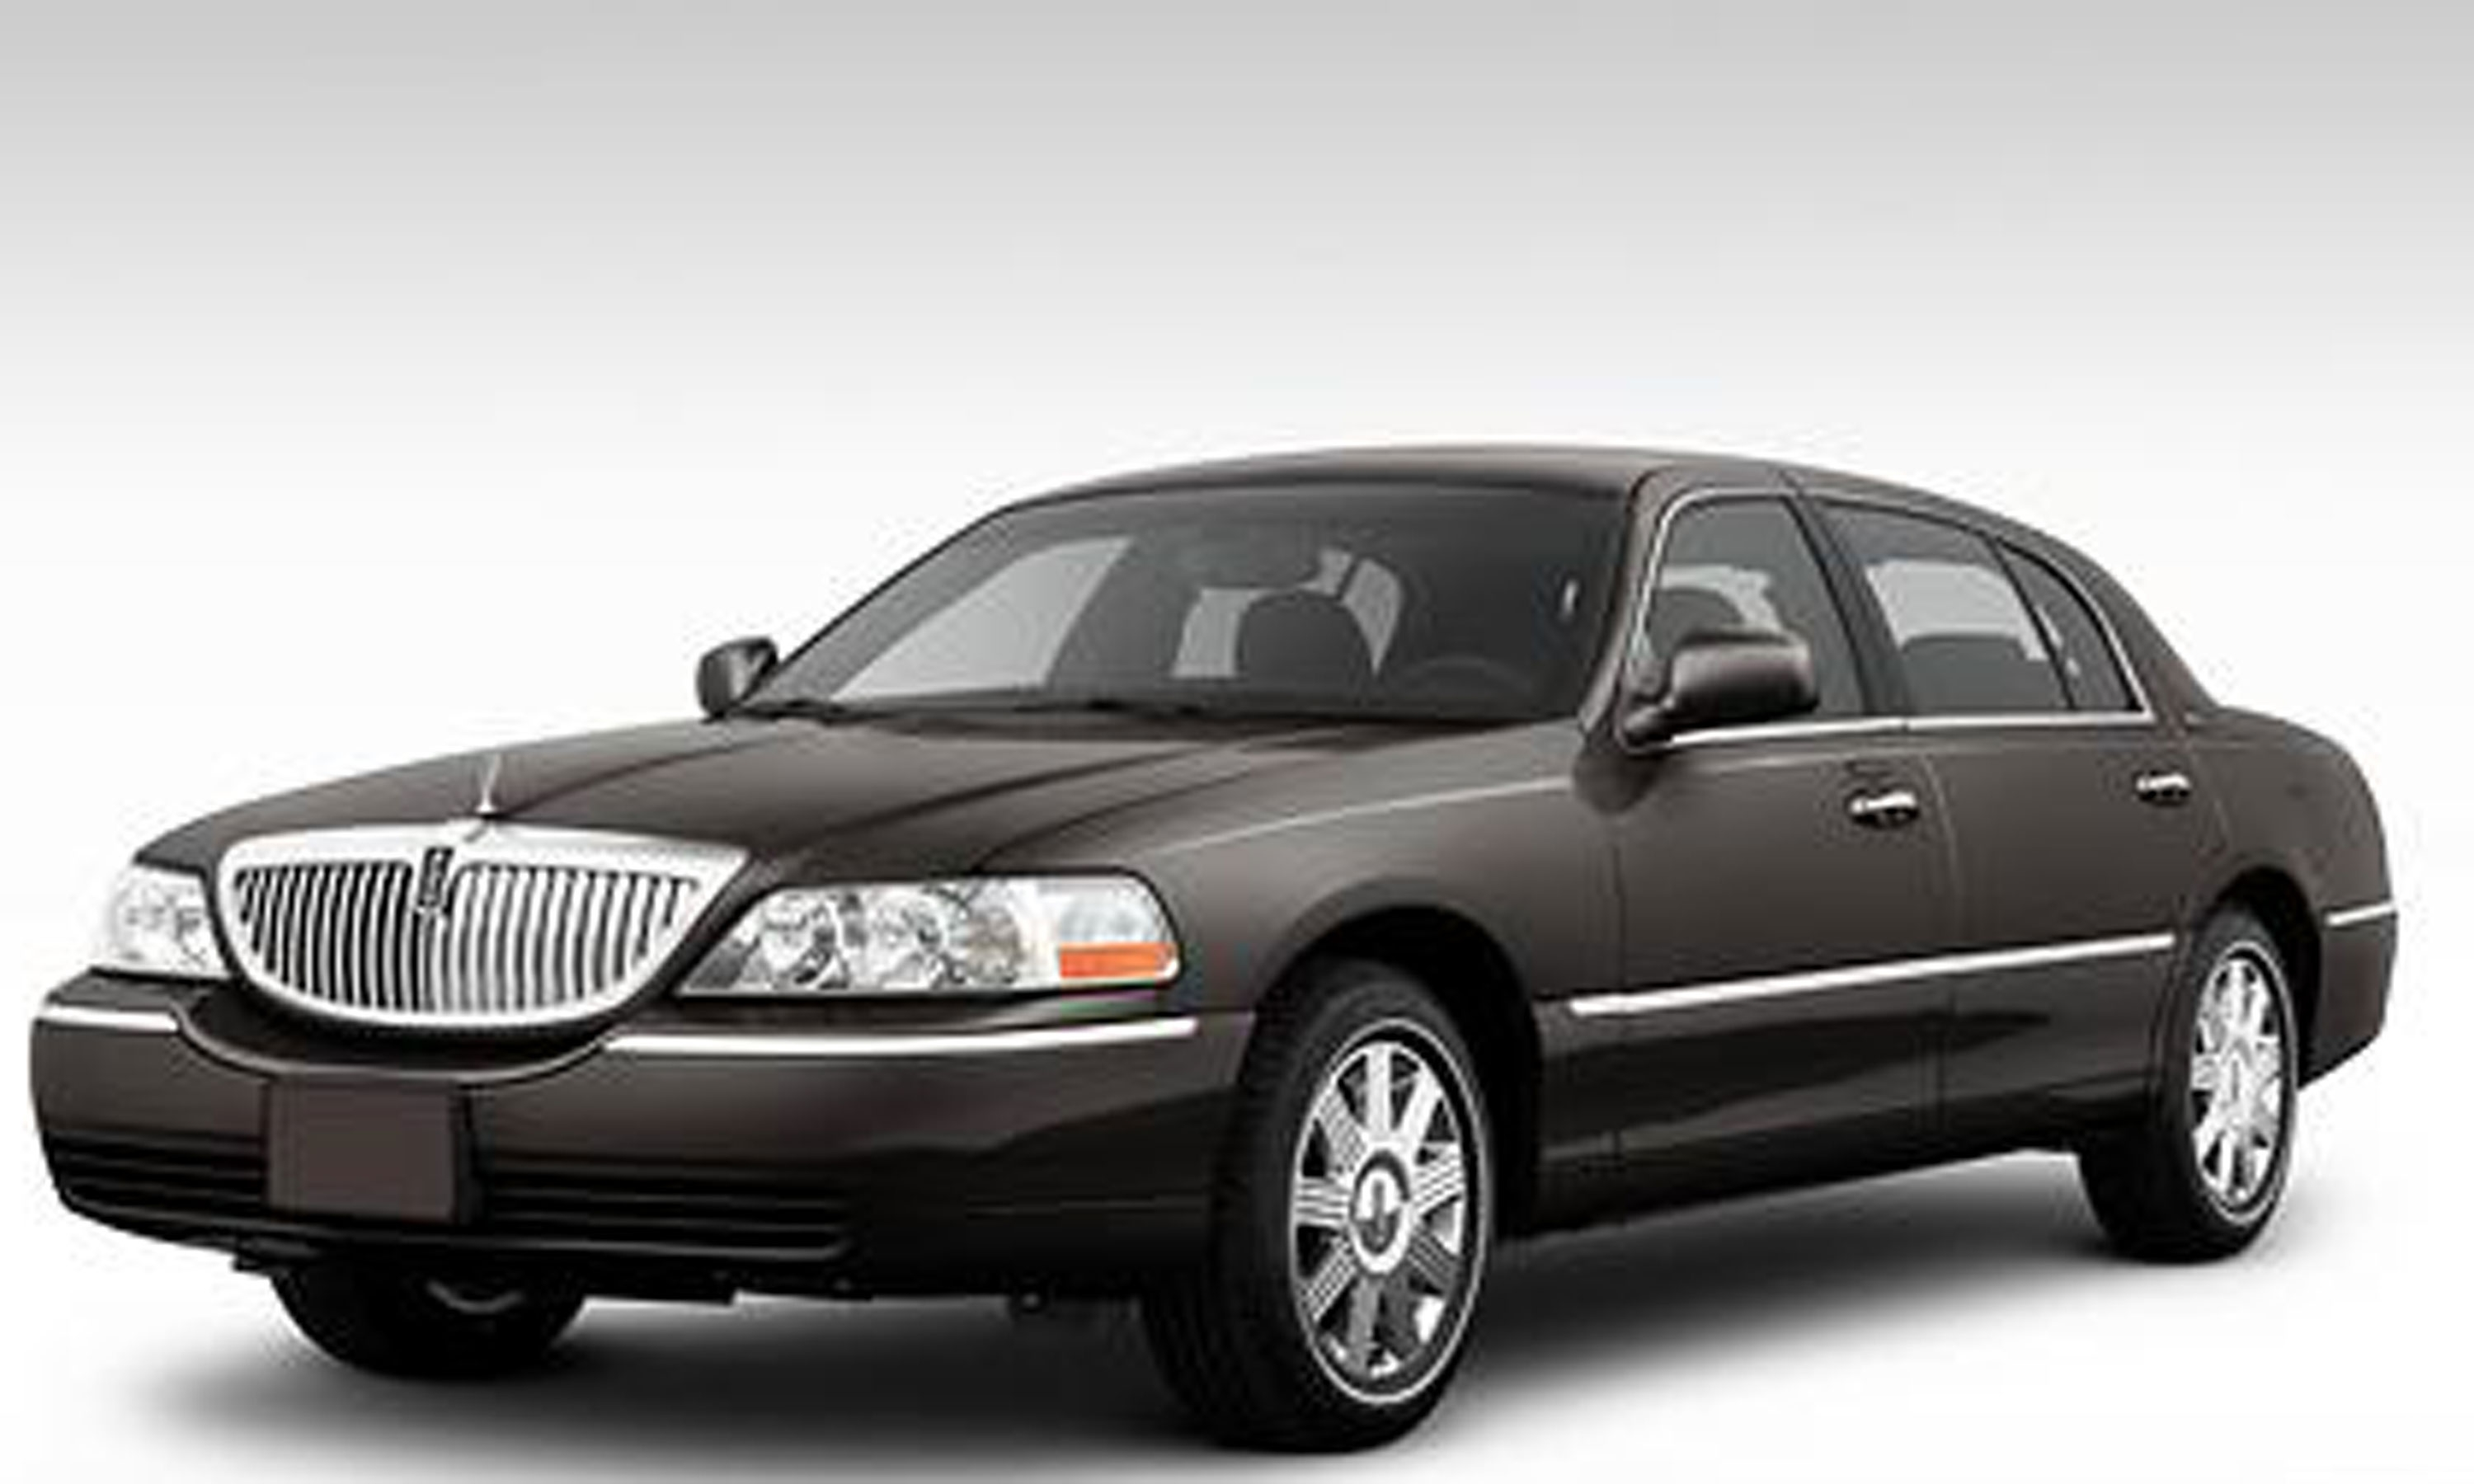 fl lot en copart auto certificate title auction car jacksonville online lincoln s carfinder east ended on auctions vin of town